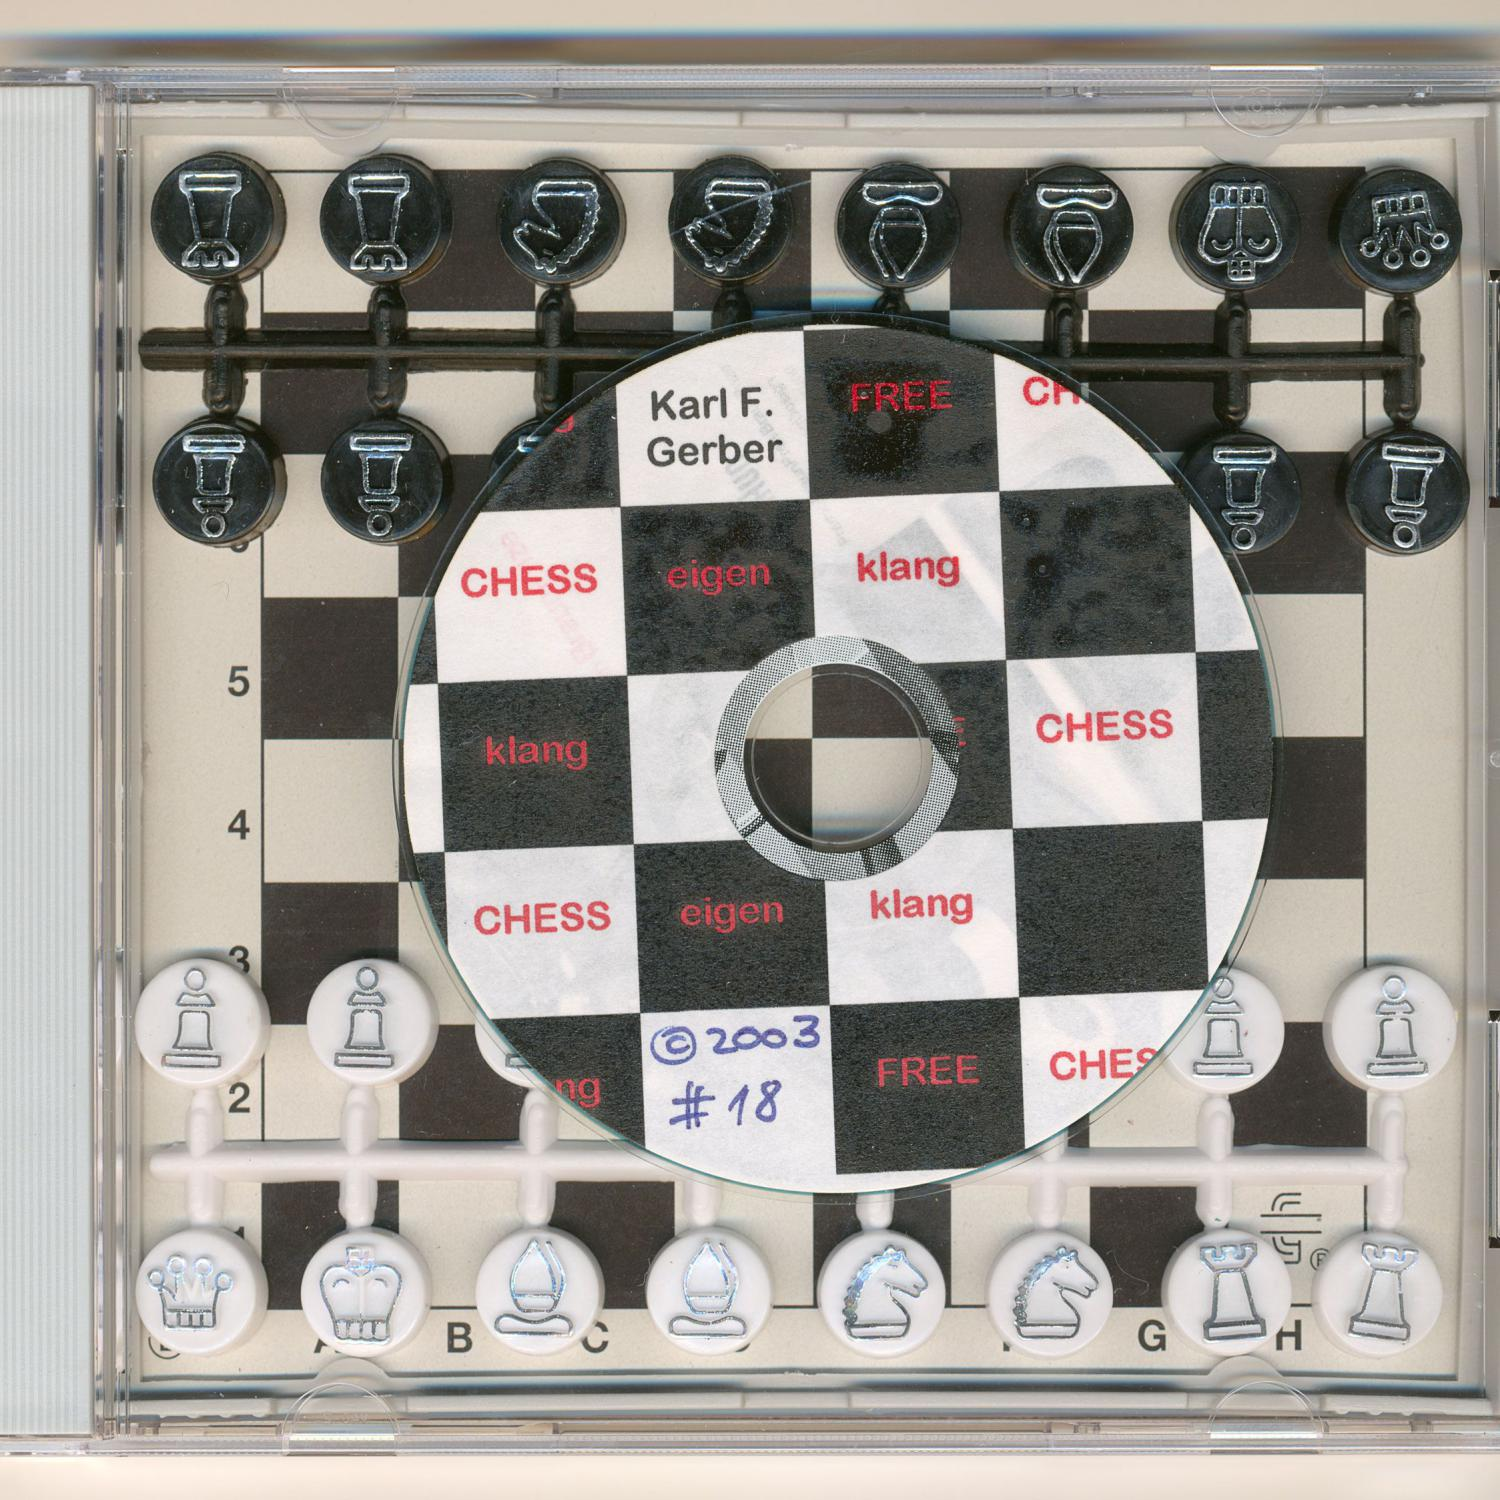 Free Chess - the readymade product